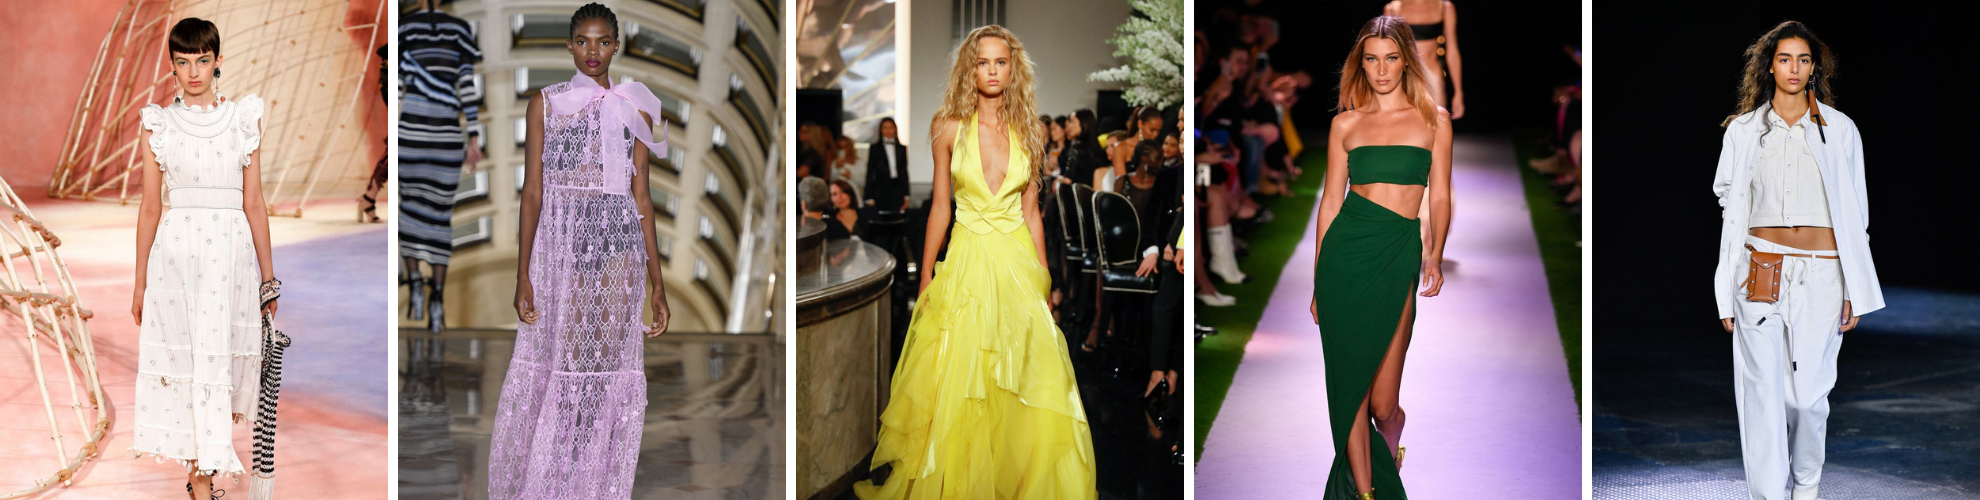 The Best of the Best: The Most Coveted Runway Looks From New York Fashion Week Spring 2020